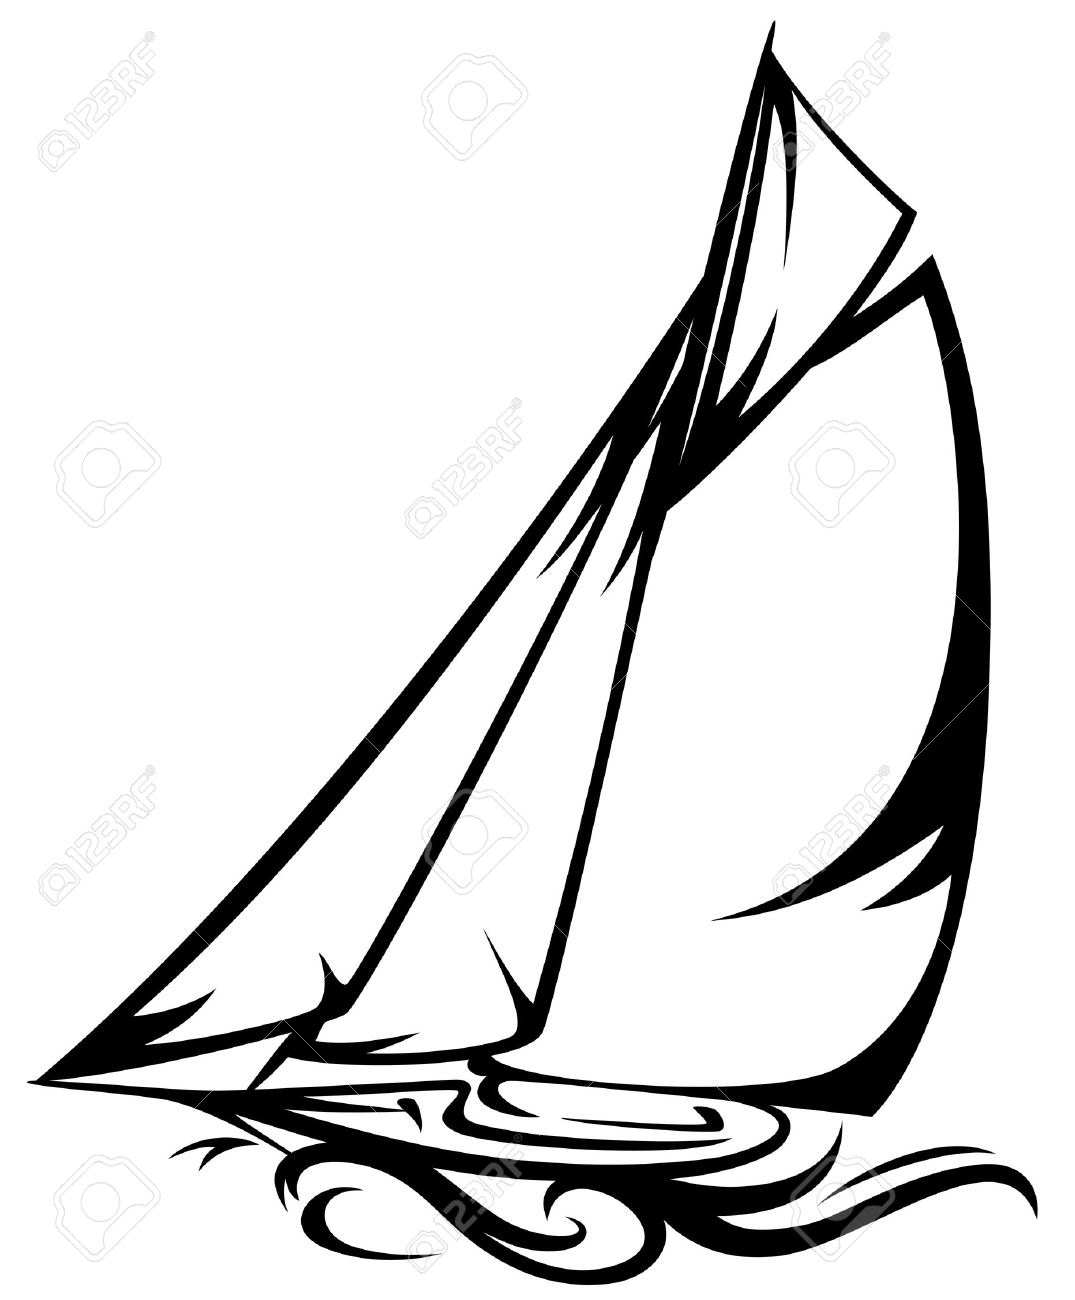 sailing yacht illustration black and white outline royalty free rh 123rf com